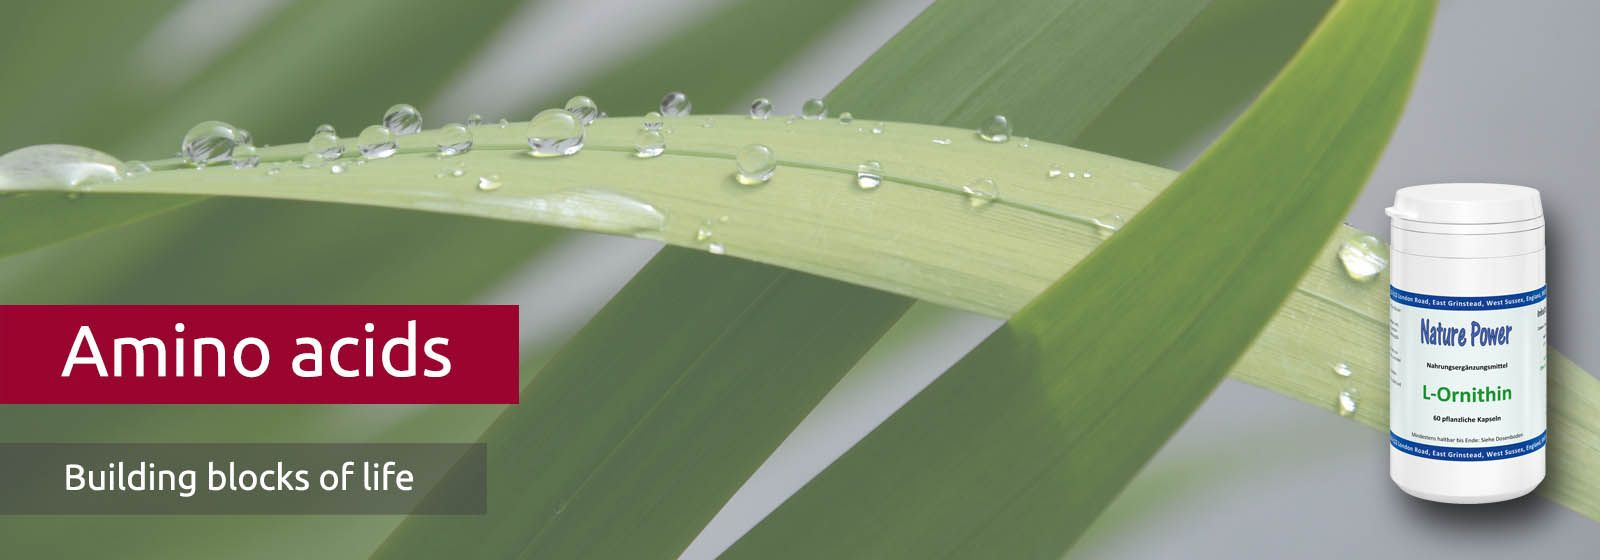 water drops on a palm leaf shine in the sun